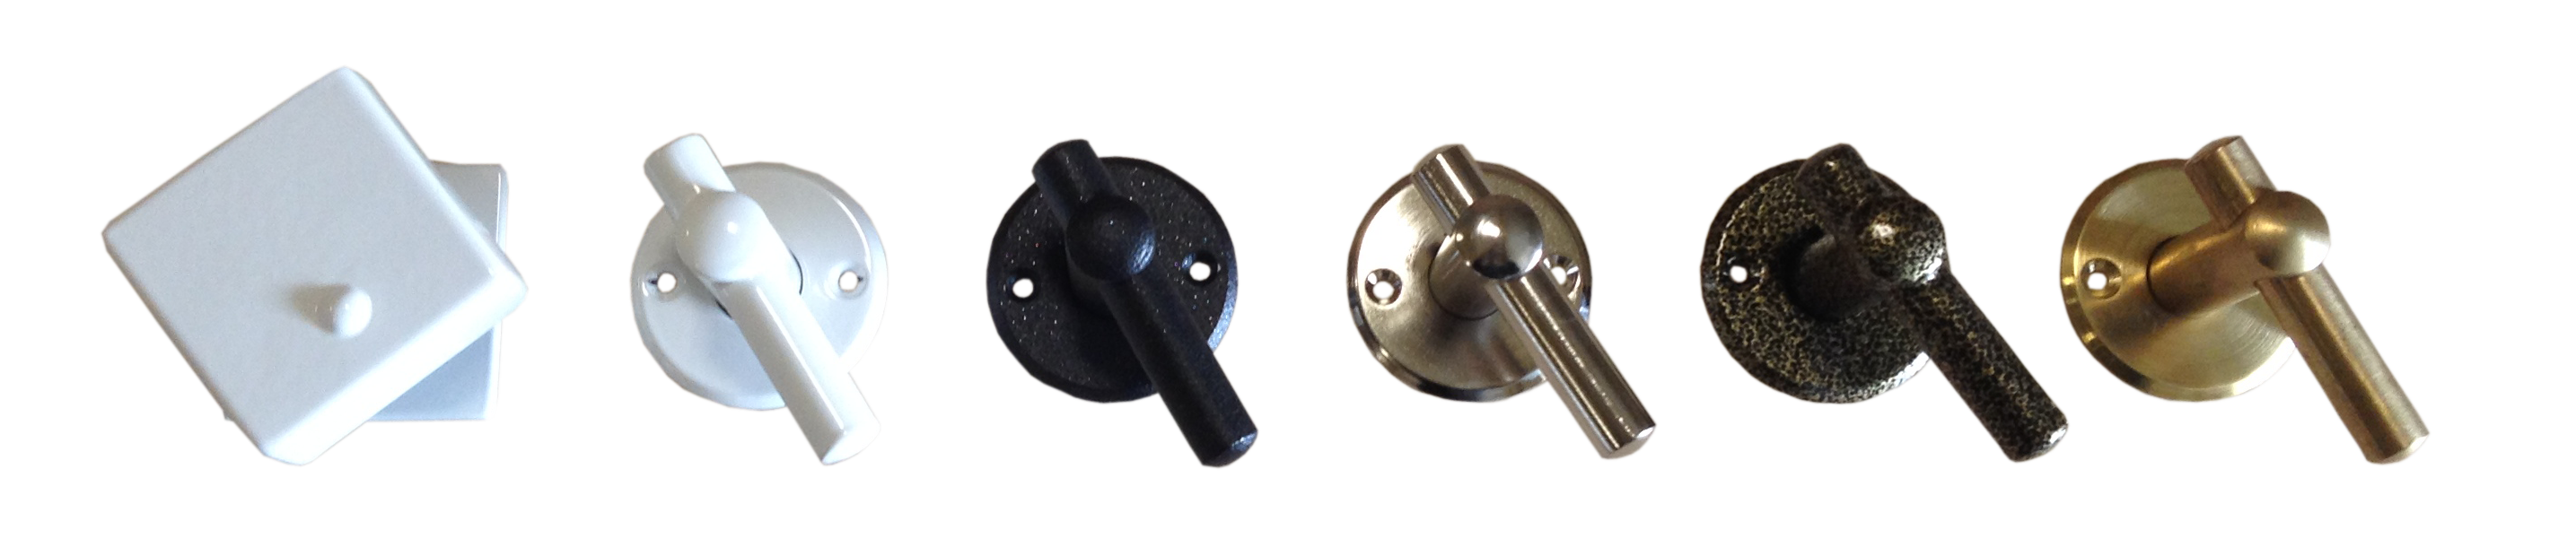 Accessory fittings